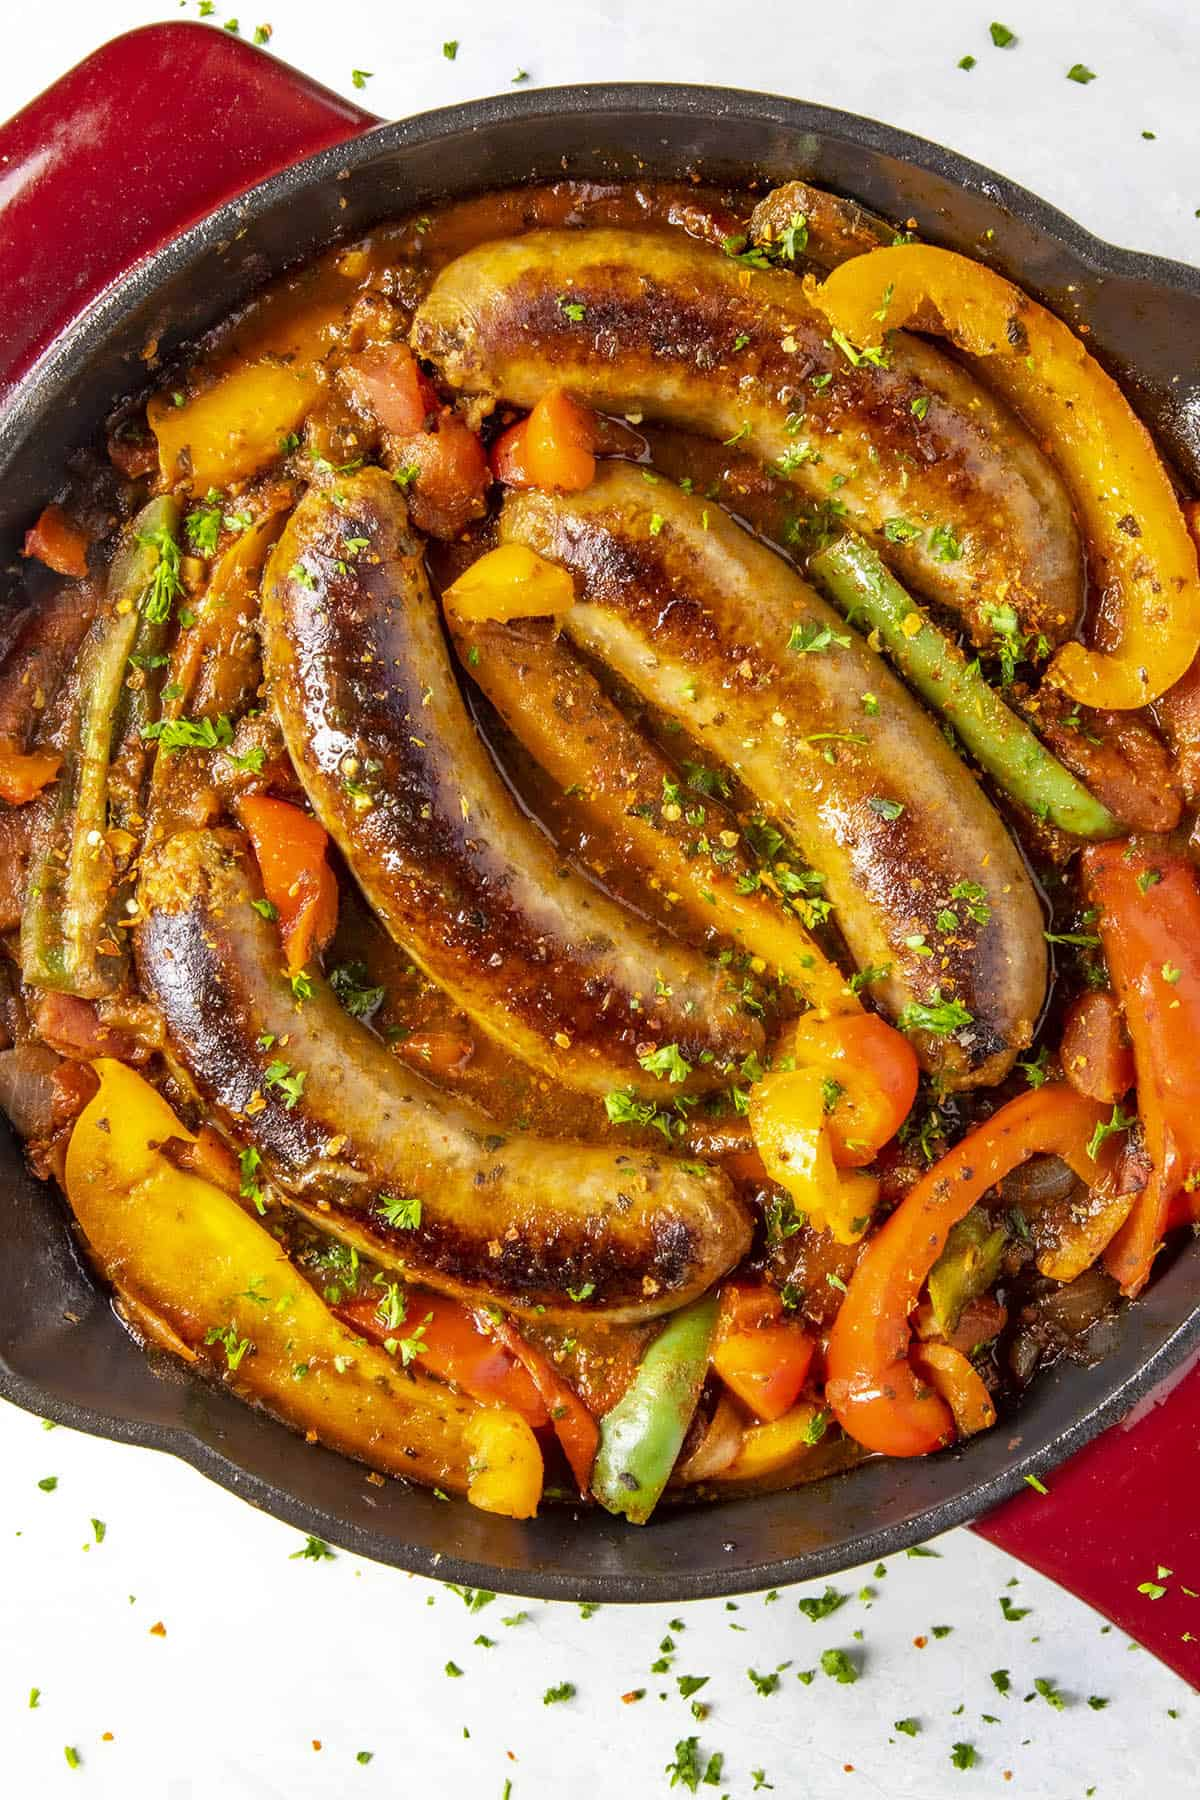 Sausage and Peppers ready to eat